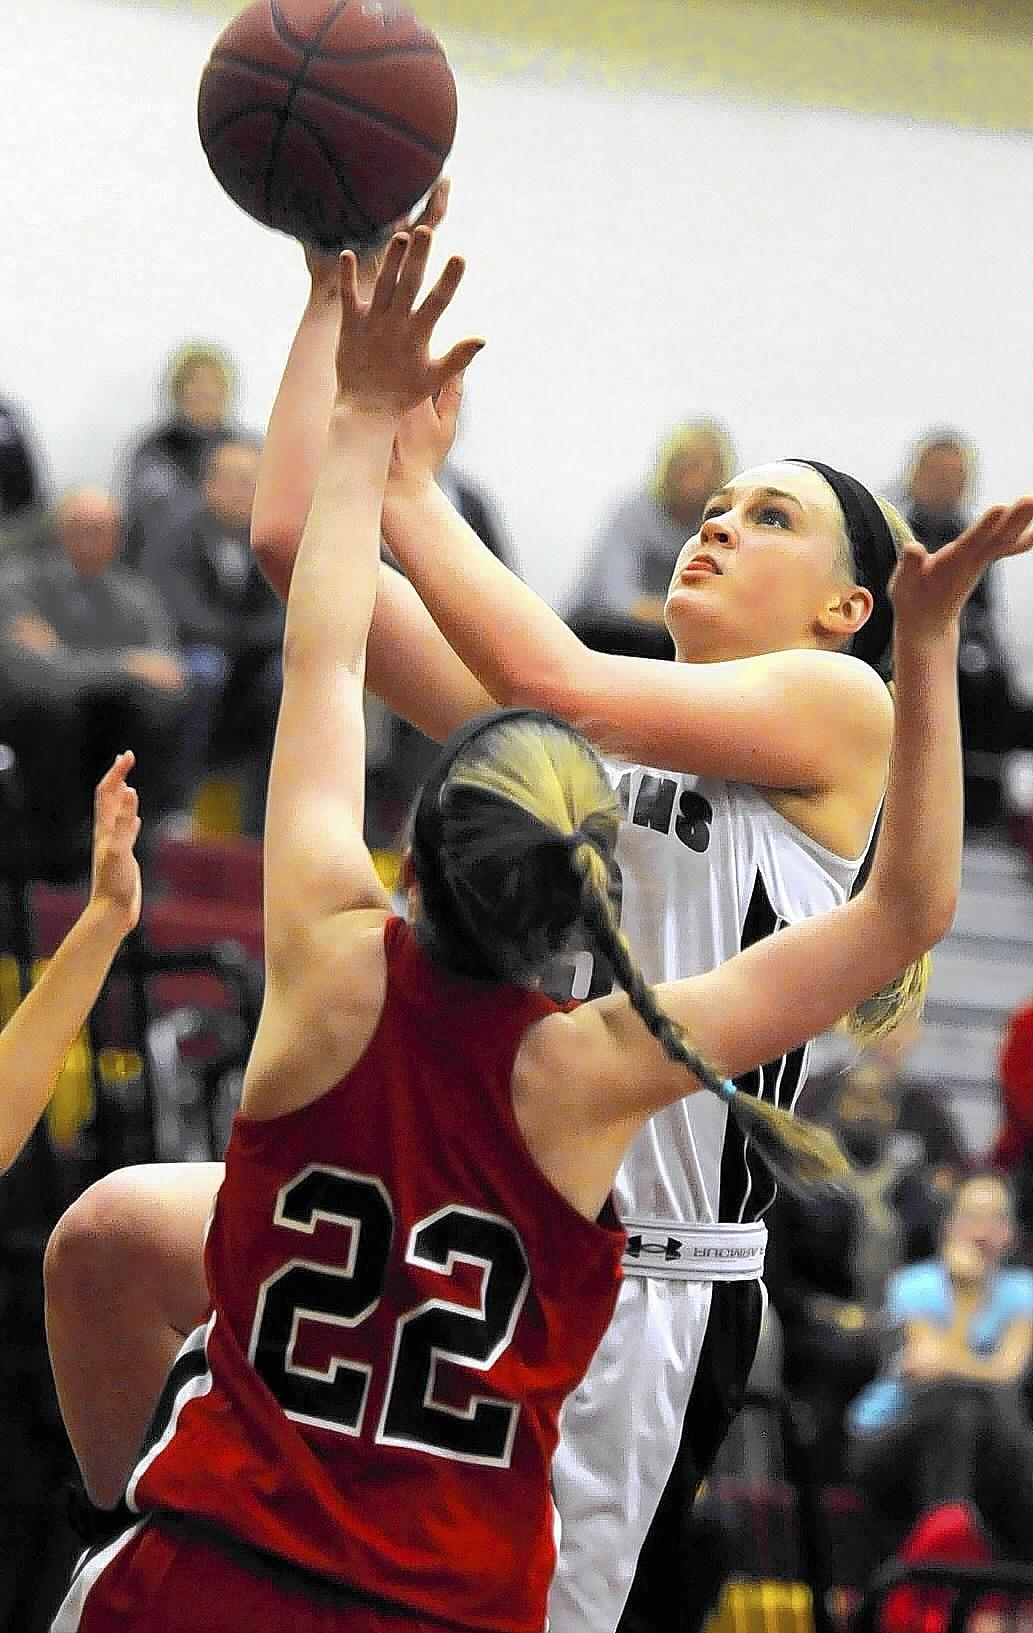 Farmington's Sophie Borg shoots over E.O. Smith defender Holly Worrski in the CCC Girls Basketball Tournament semifinals. E.O. Smith won 59-55 and will play Weaver High in the finals.